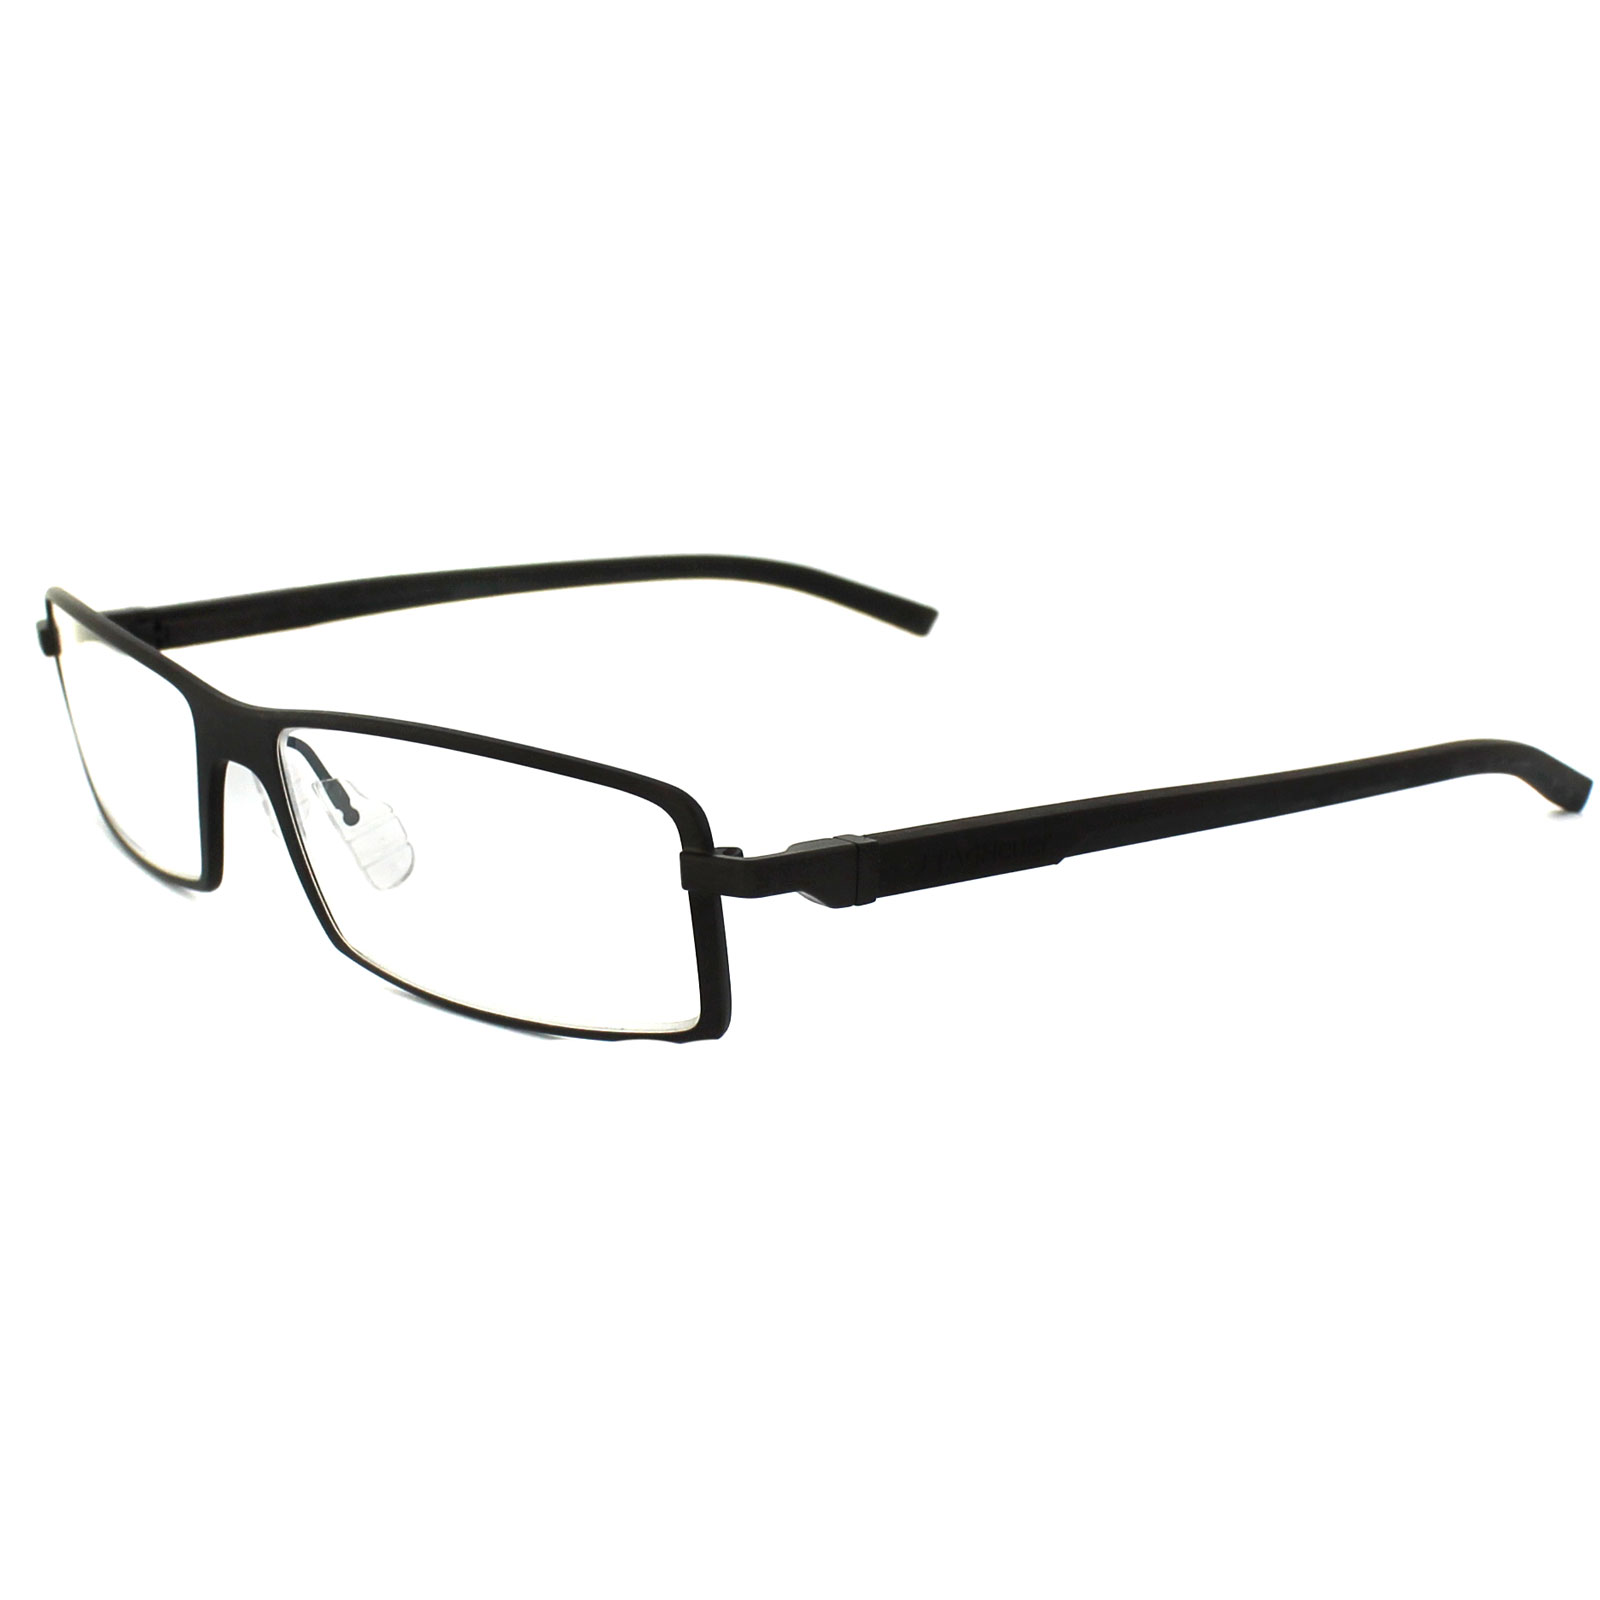 Tag Heuer Glasses Frames Automatic 0802 003 Matt Chocolate ...